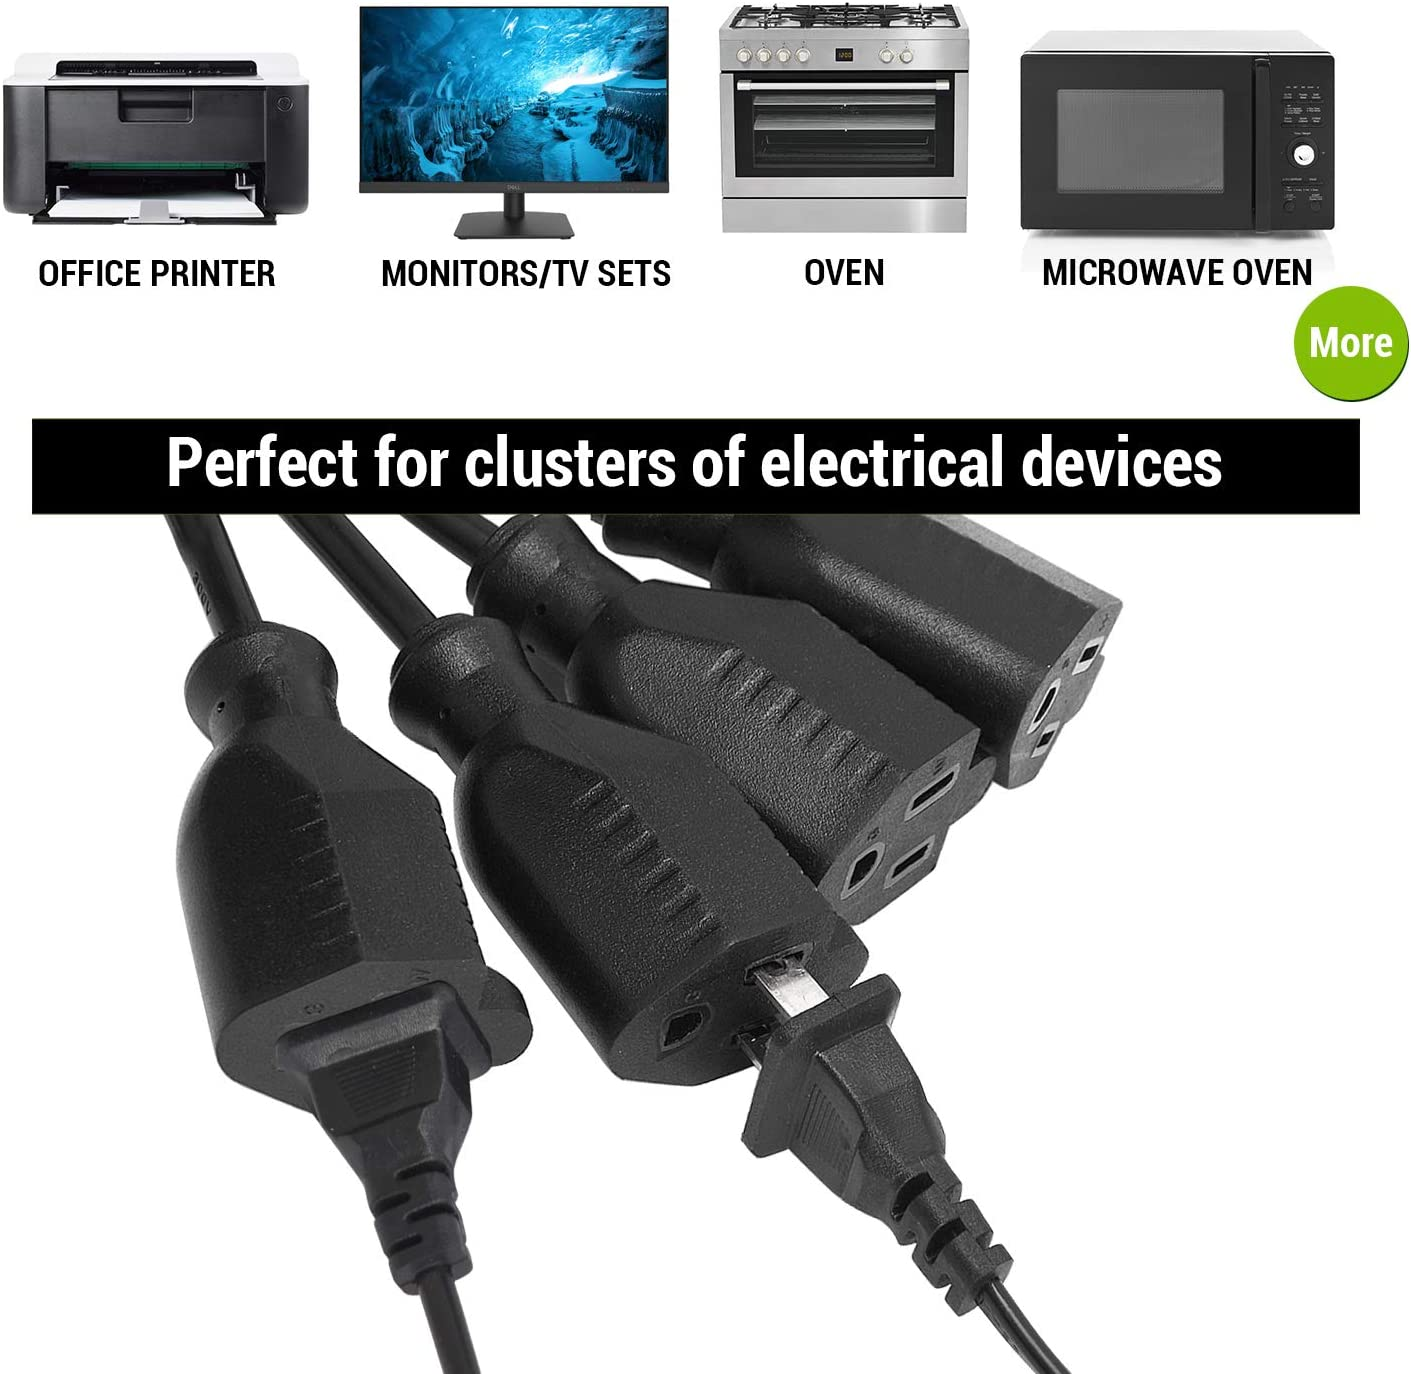 DJ Setups Facmogu Black 1 to 4 Power Cord Extension Y Splitter Cable Holiday Lights ect. Travel 4 Way Power Splitter Cord Suitable for Home Use